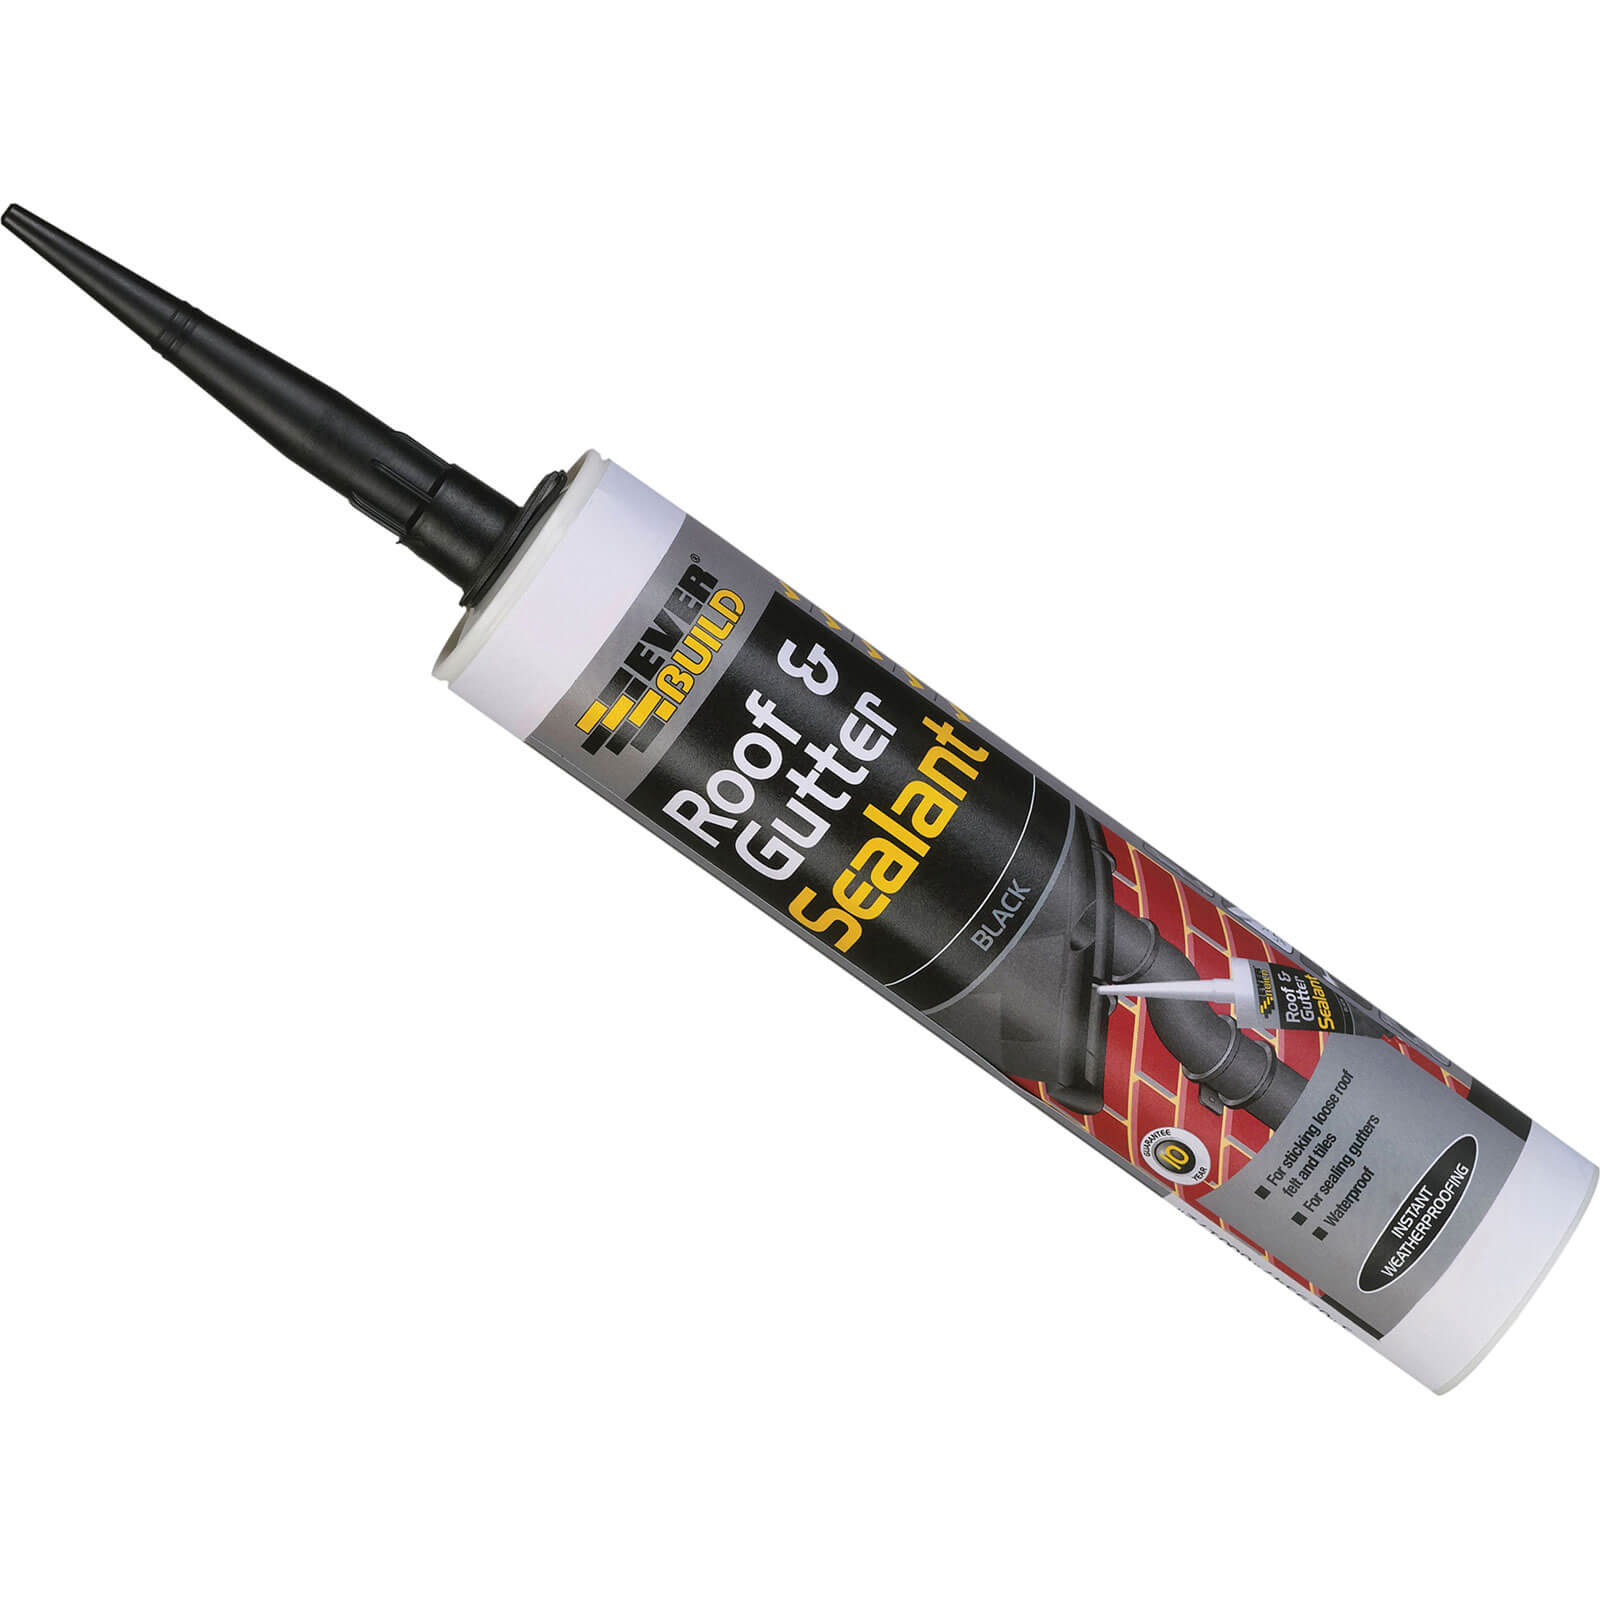 Everbuild Roof and Gutter Sealant Black 310ml